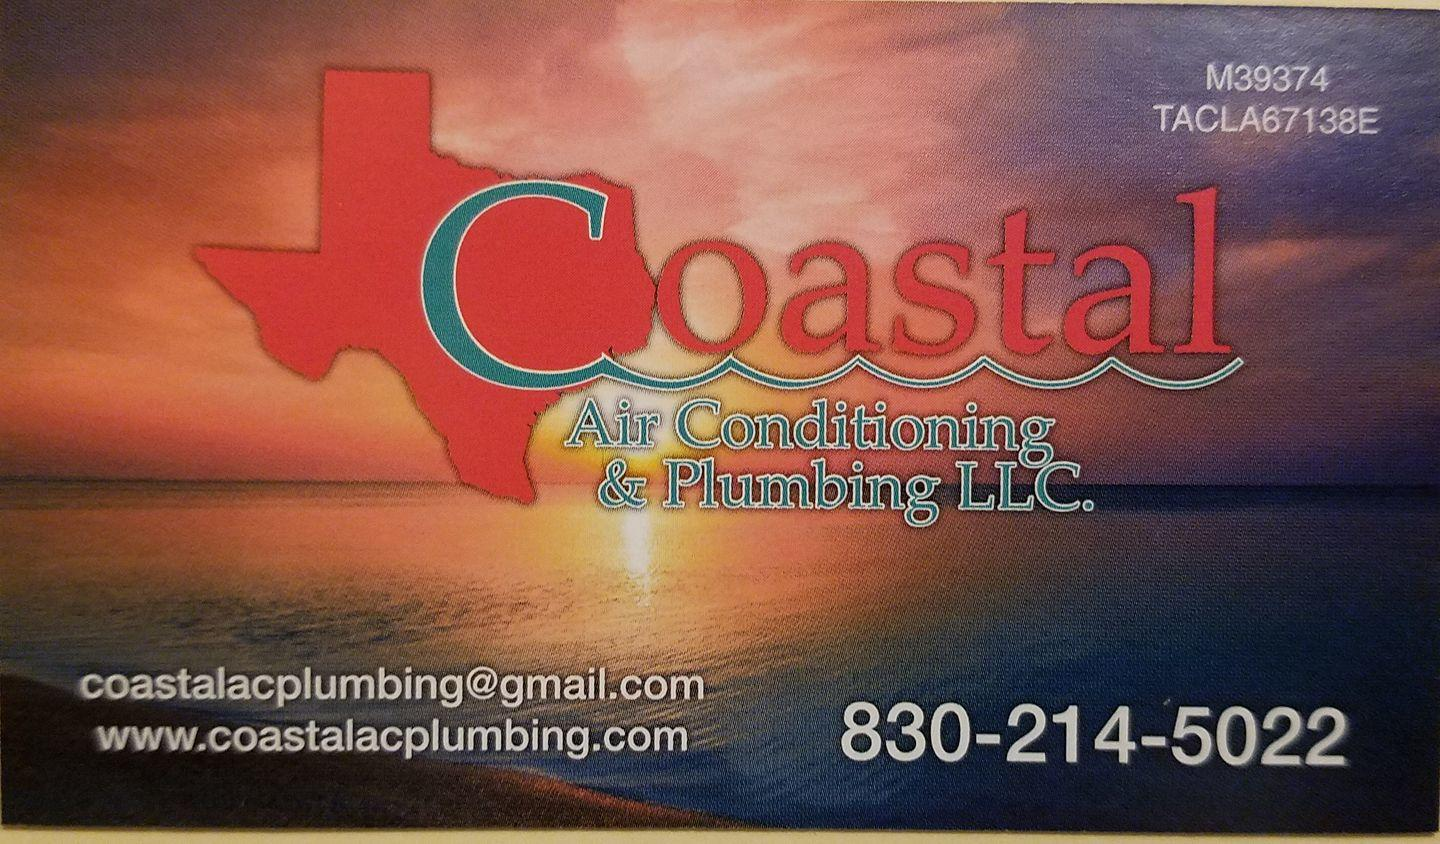 Coastal Air Conditioning and Plumbing image 4